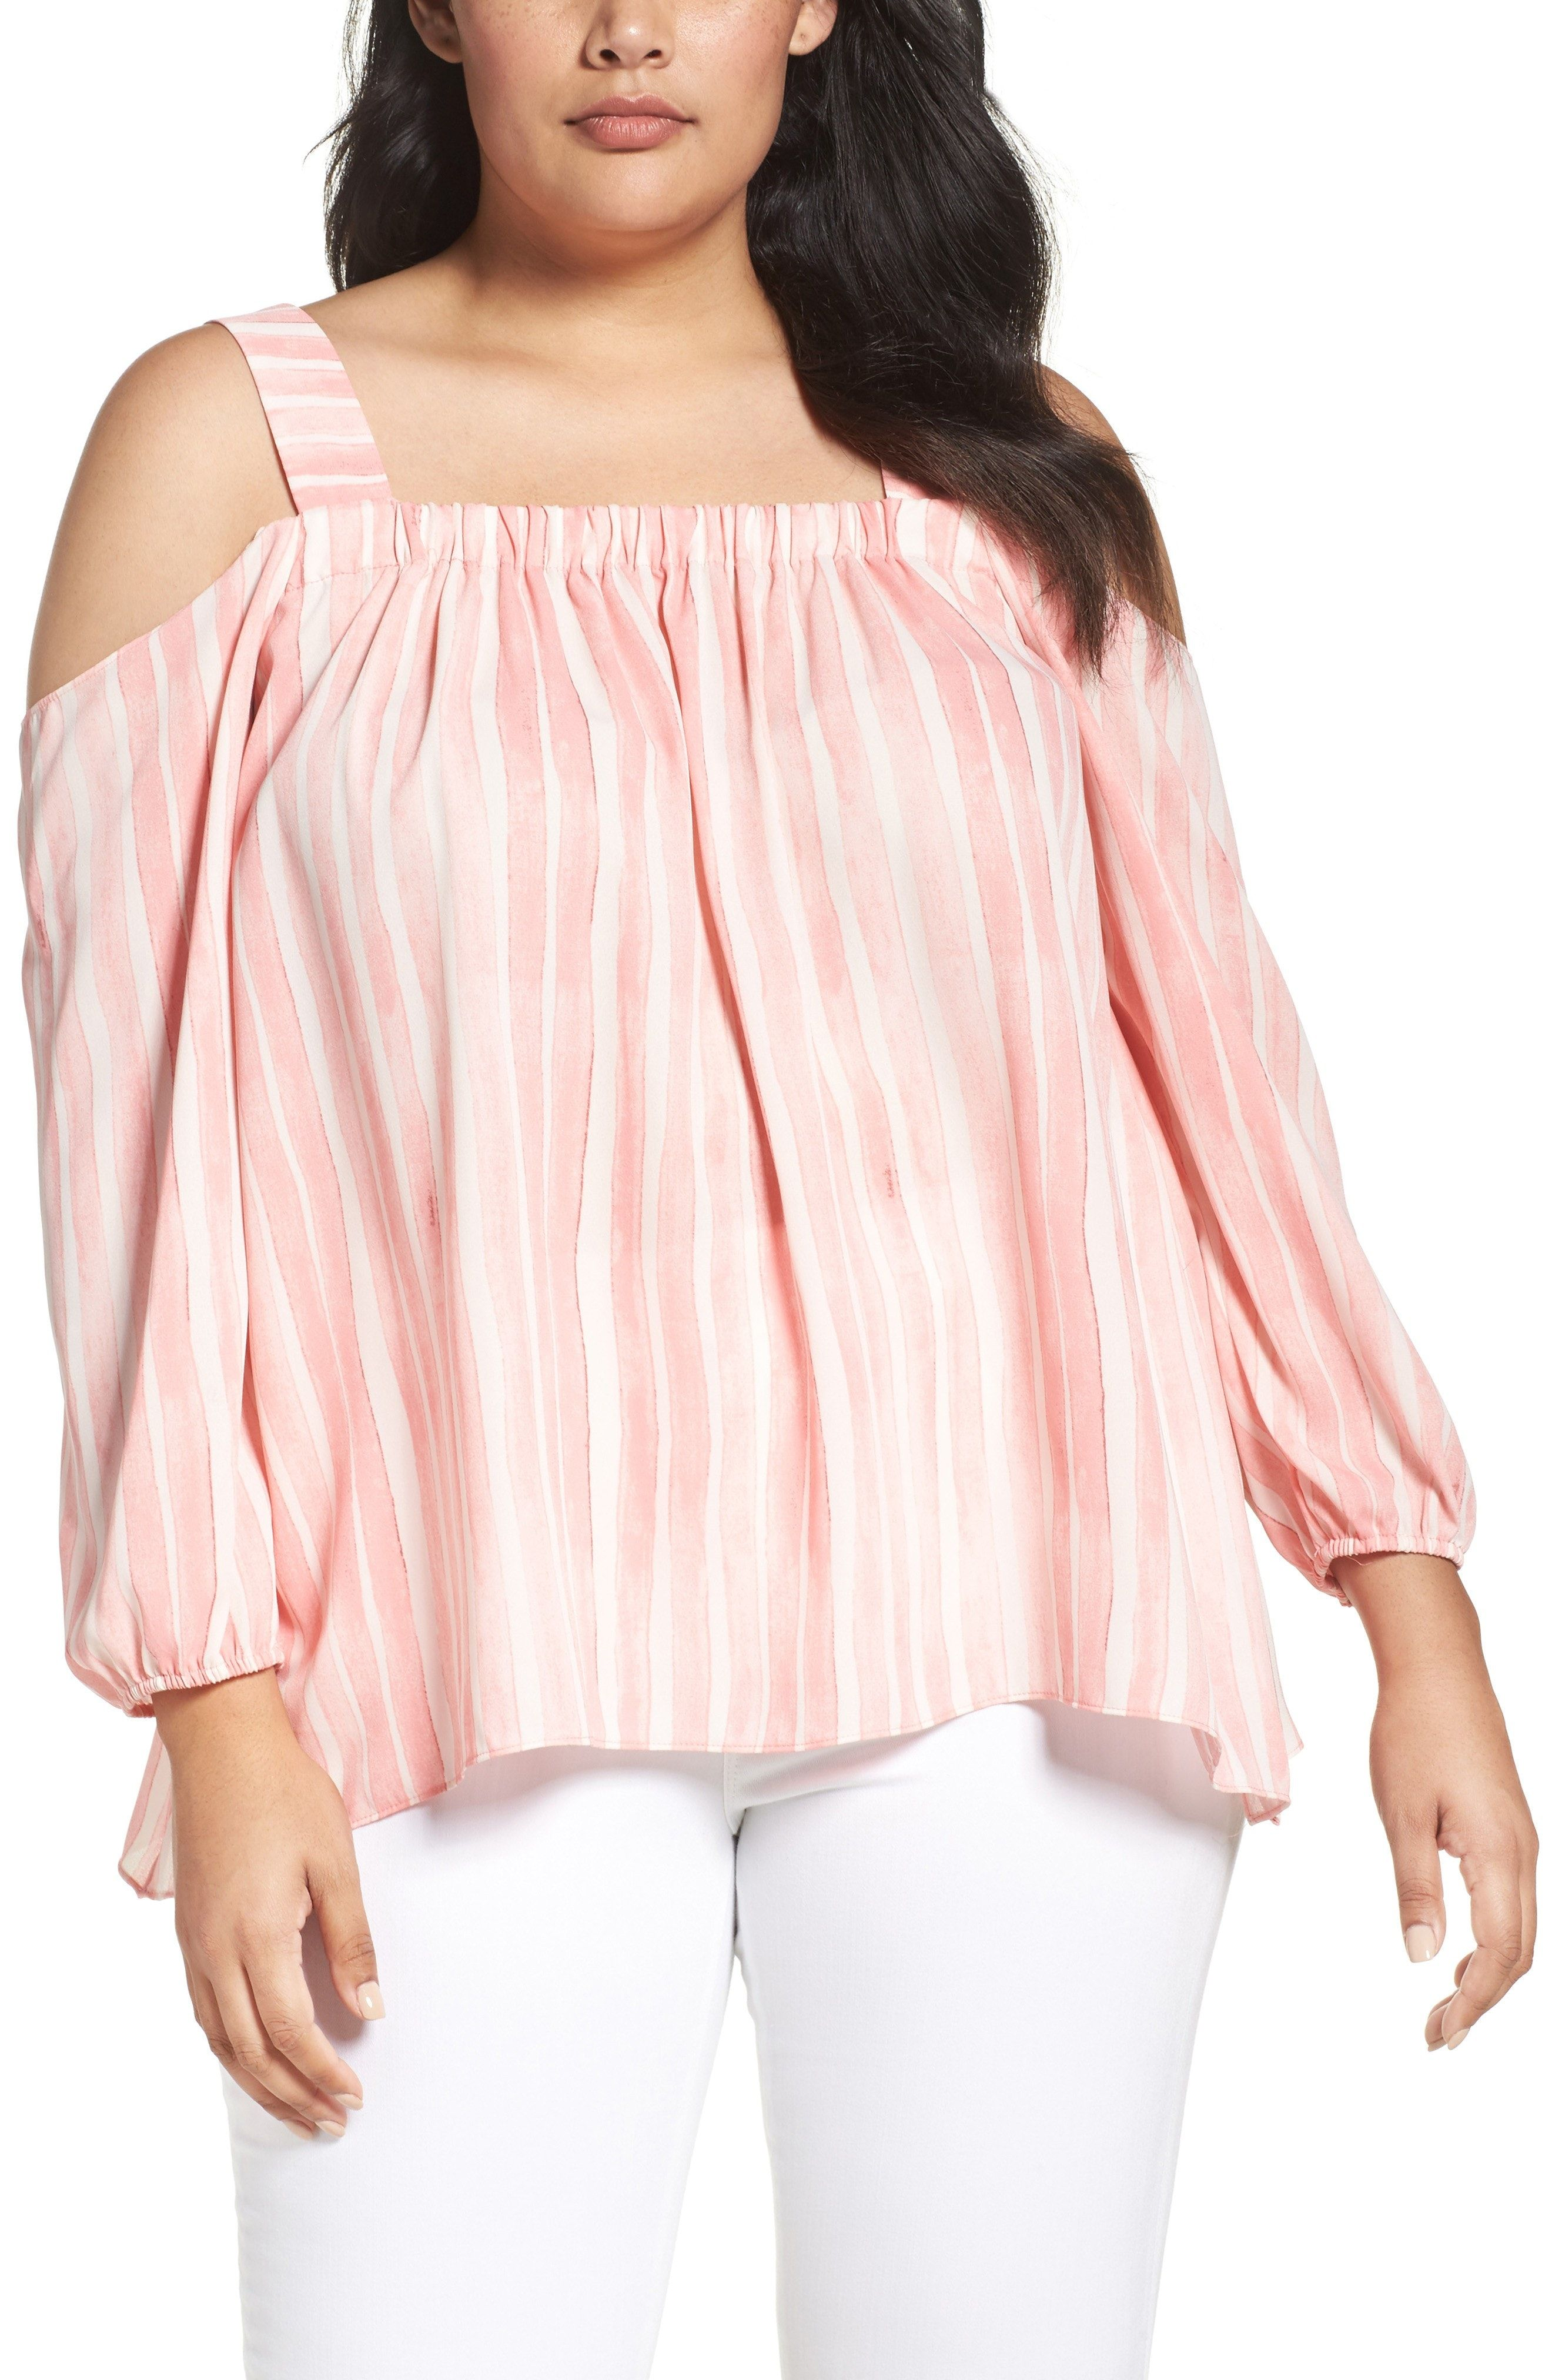 755d93528a732 New Vince Camuto Graceful Phrases Cold Shoulder Blouse (Plus Size) CORAL  ROSE fashion online.   89  new offer from Thenewoffer